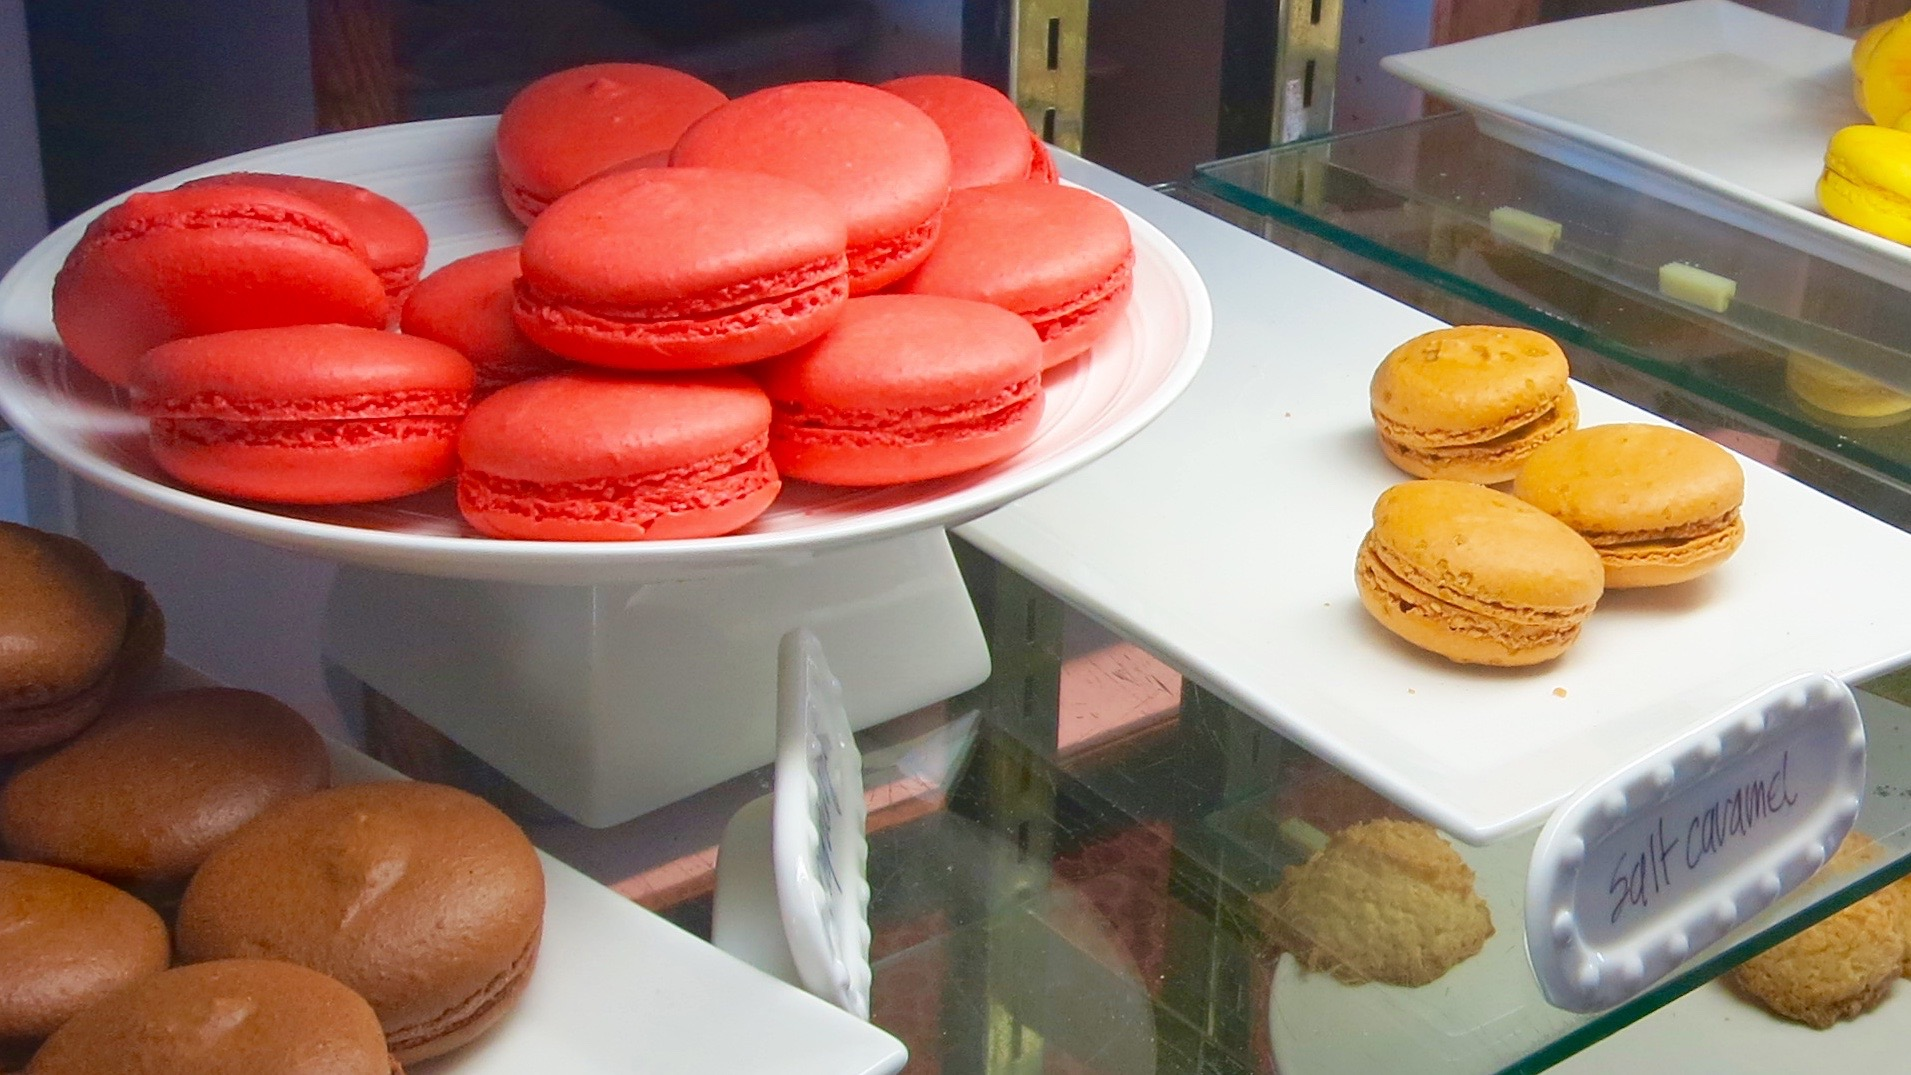 The colorful macarons from Masse's Pastries make a lovely gift (but it's understandable if you eat them all before they get home.